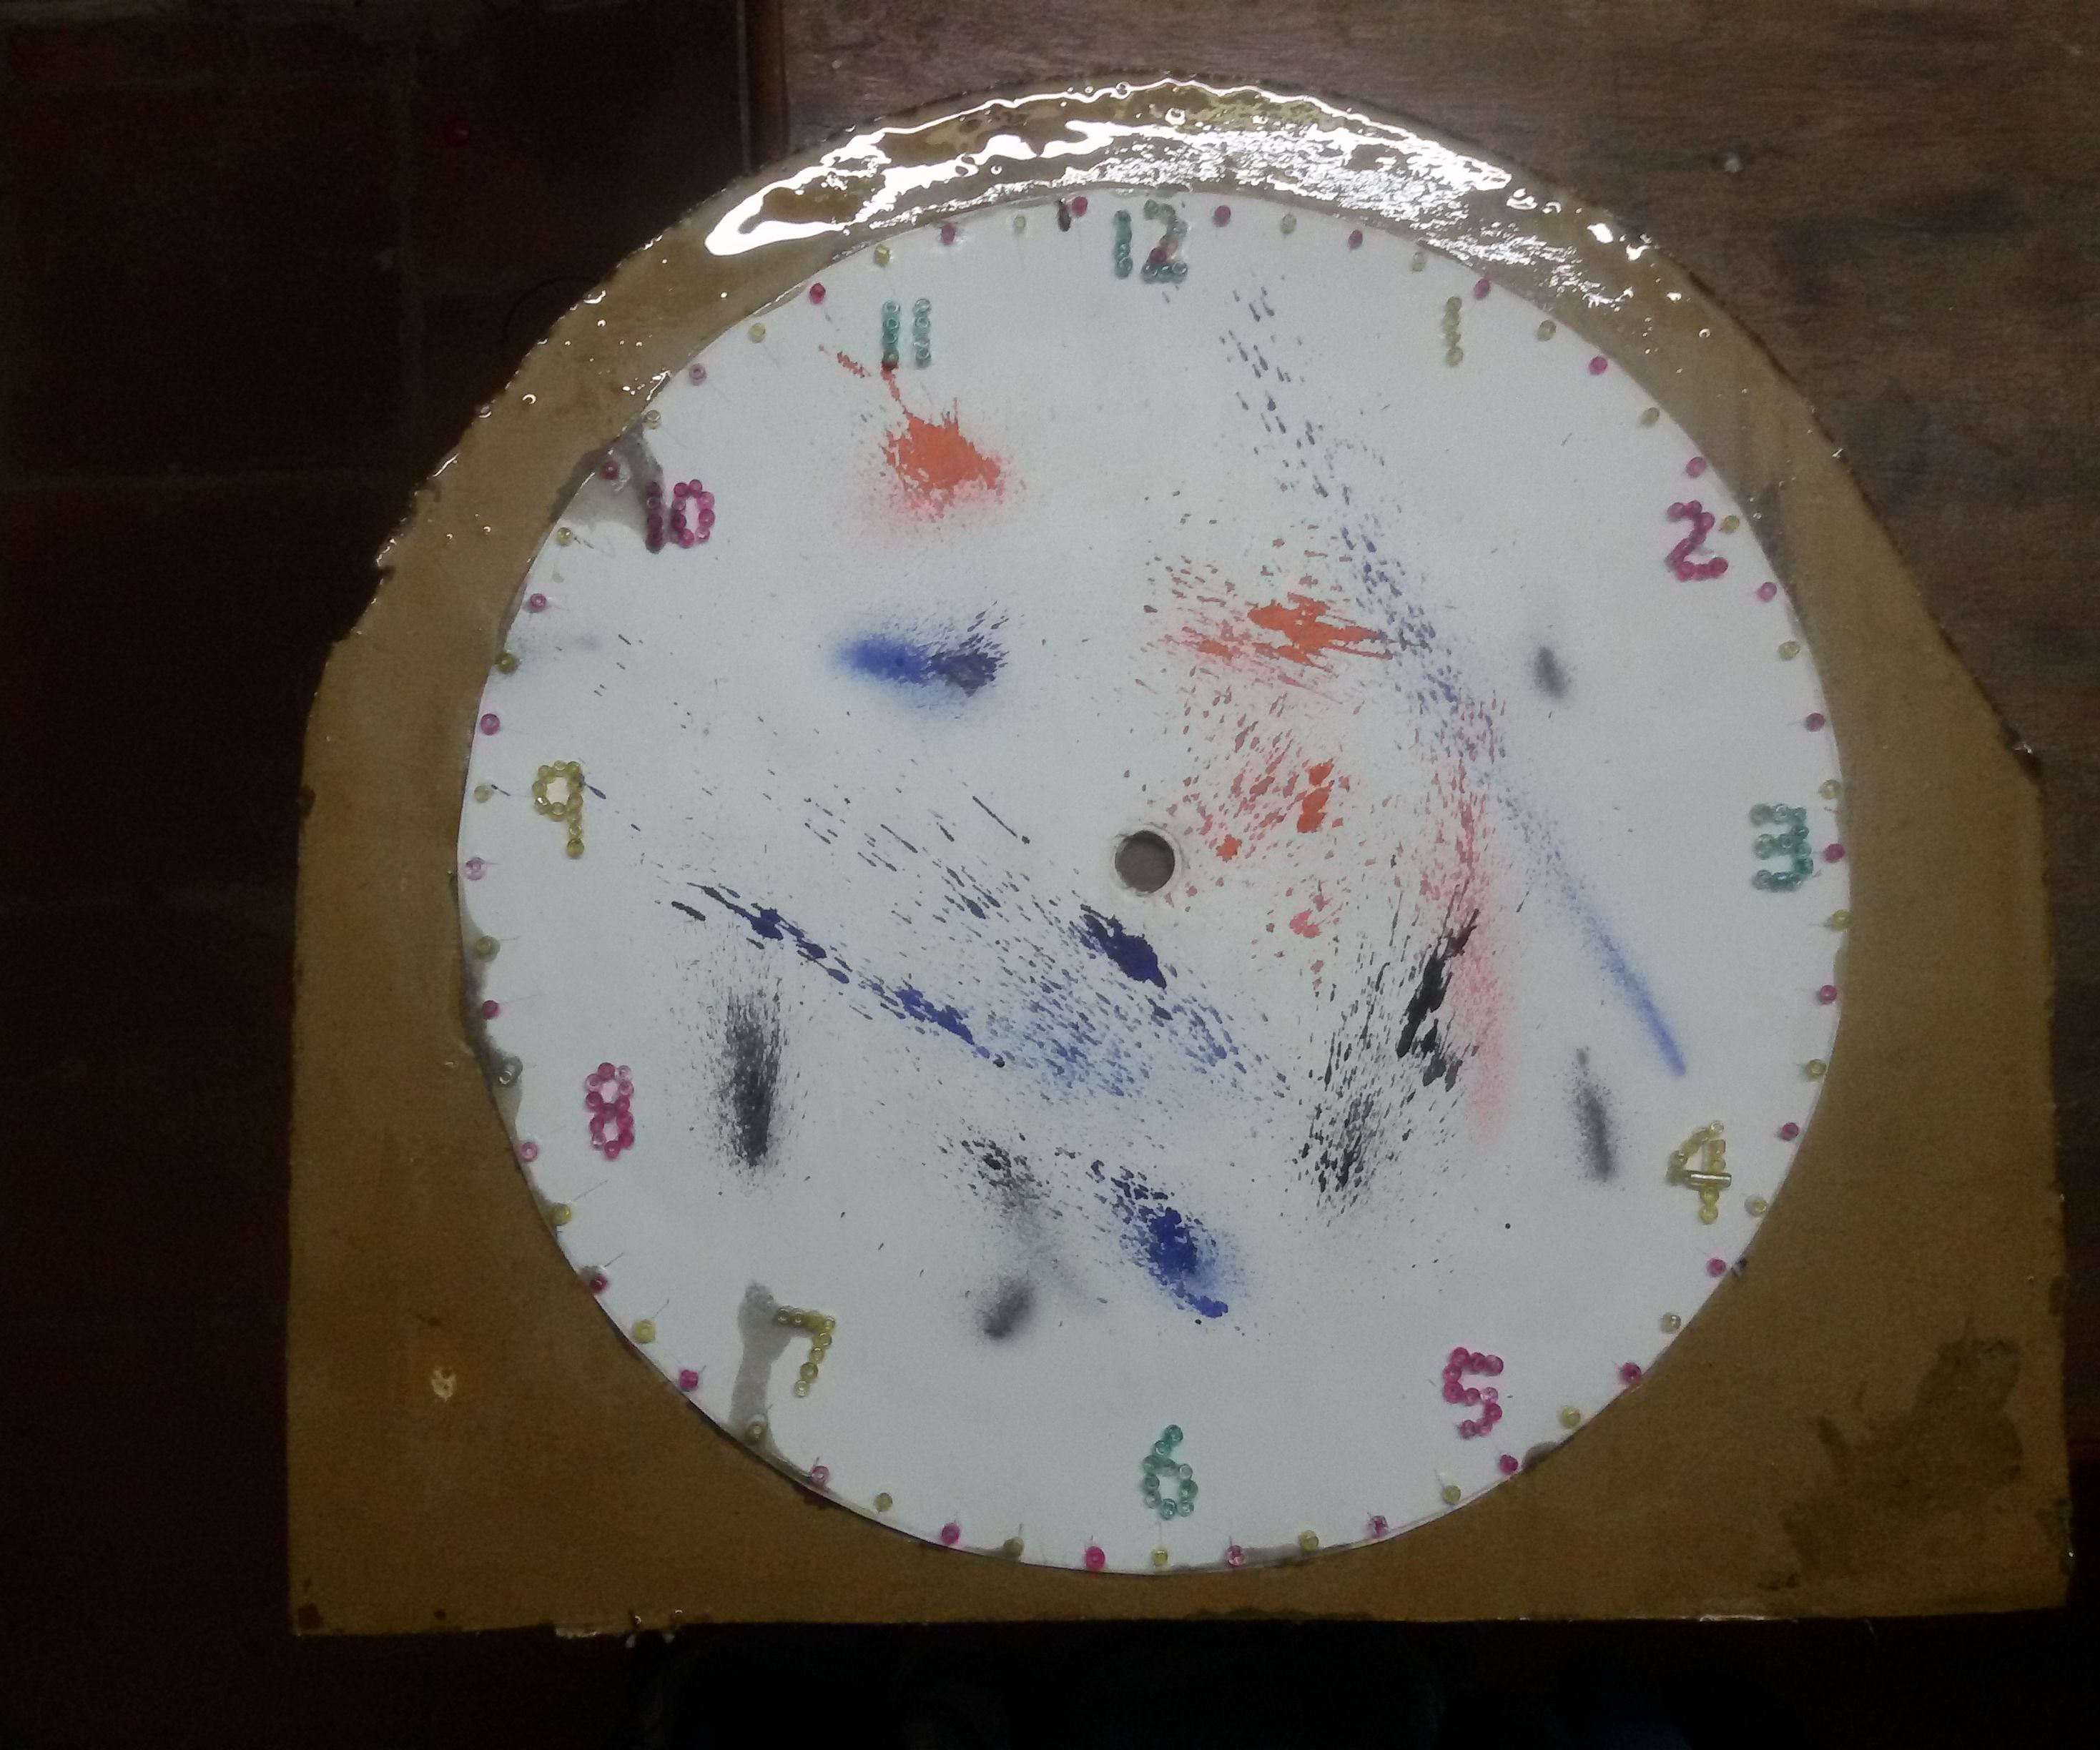 CUSTOMIZED DECORATIVE CLOCK